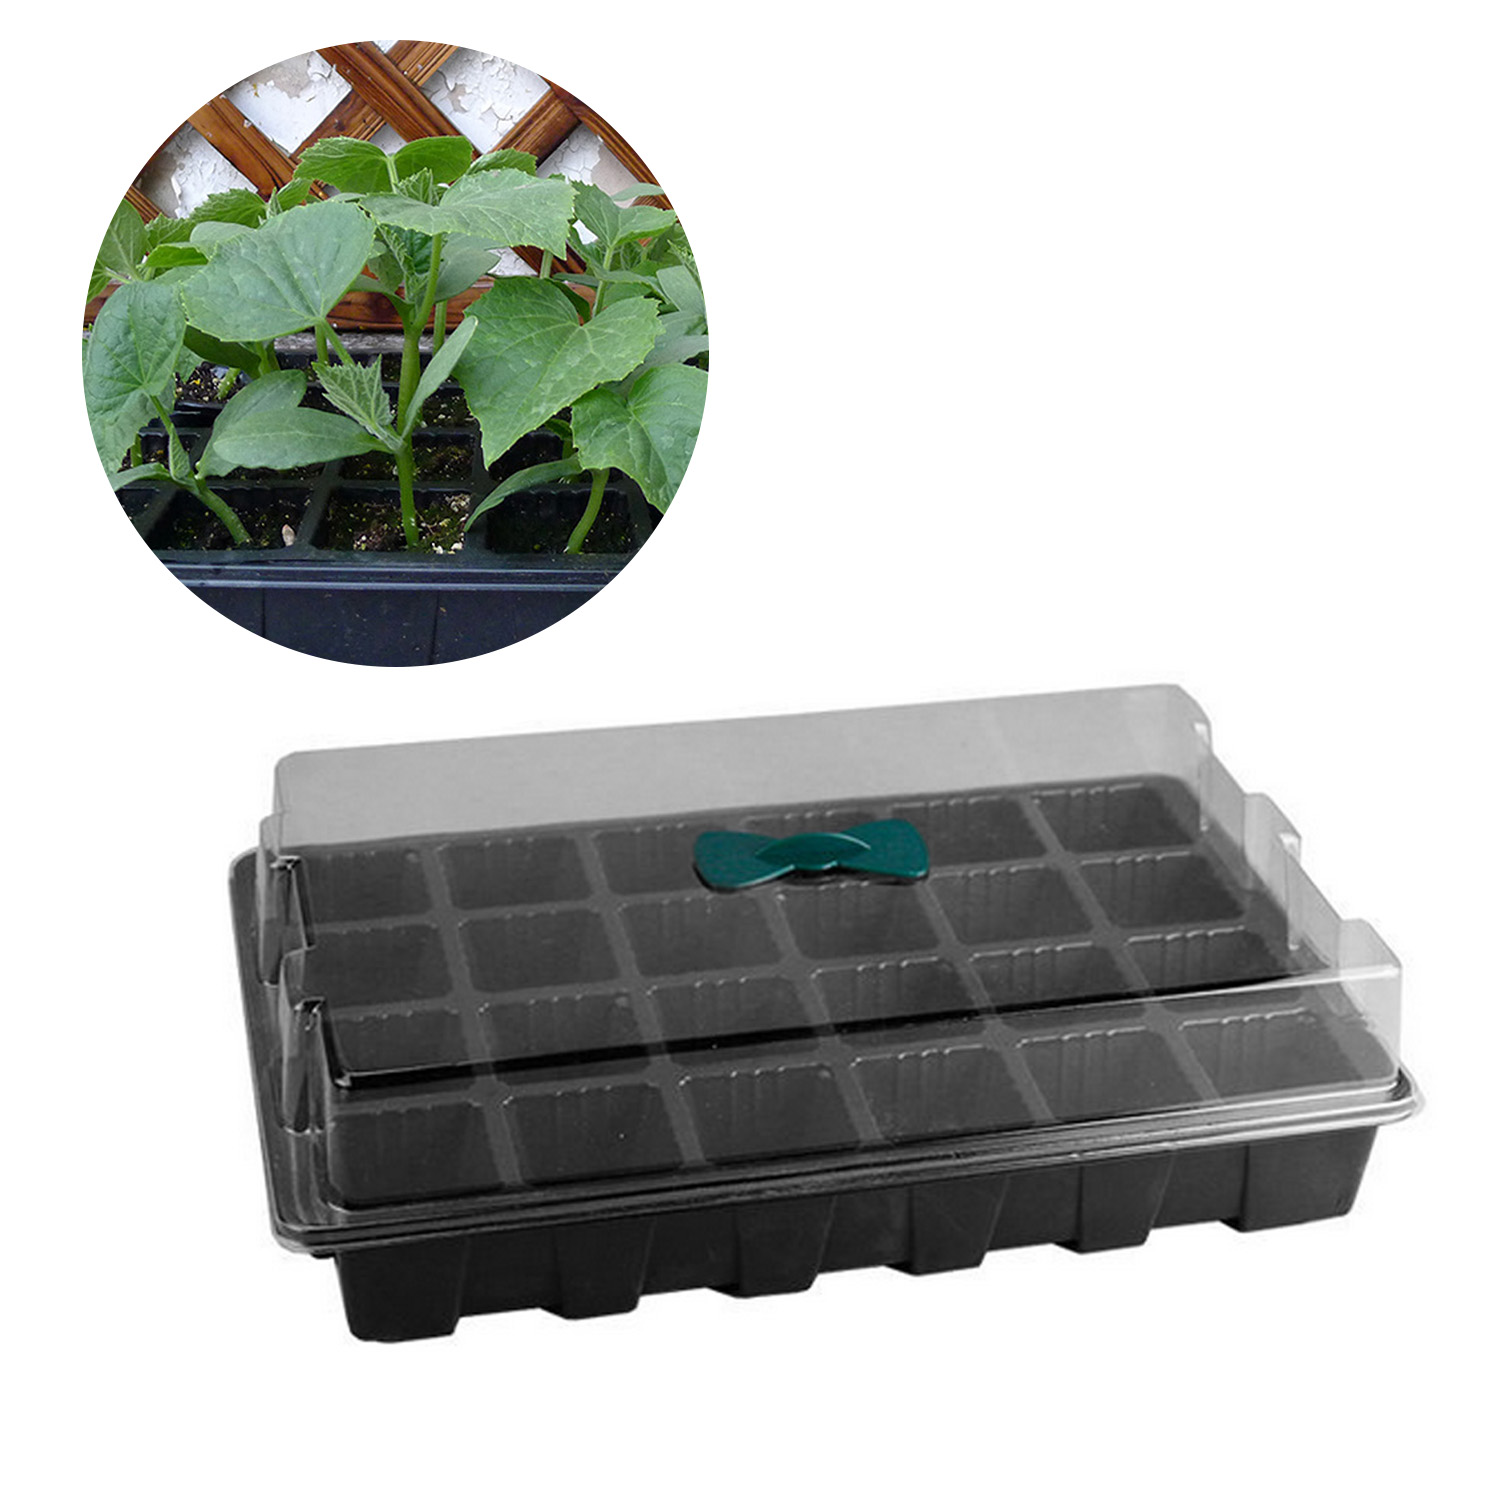 Behogar 3PCS 24-Cell Seedling Seed Starter Tray Kit with Breathable Vents for Garden Greenhouse Microgreens 36.5x23x10.5cm